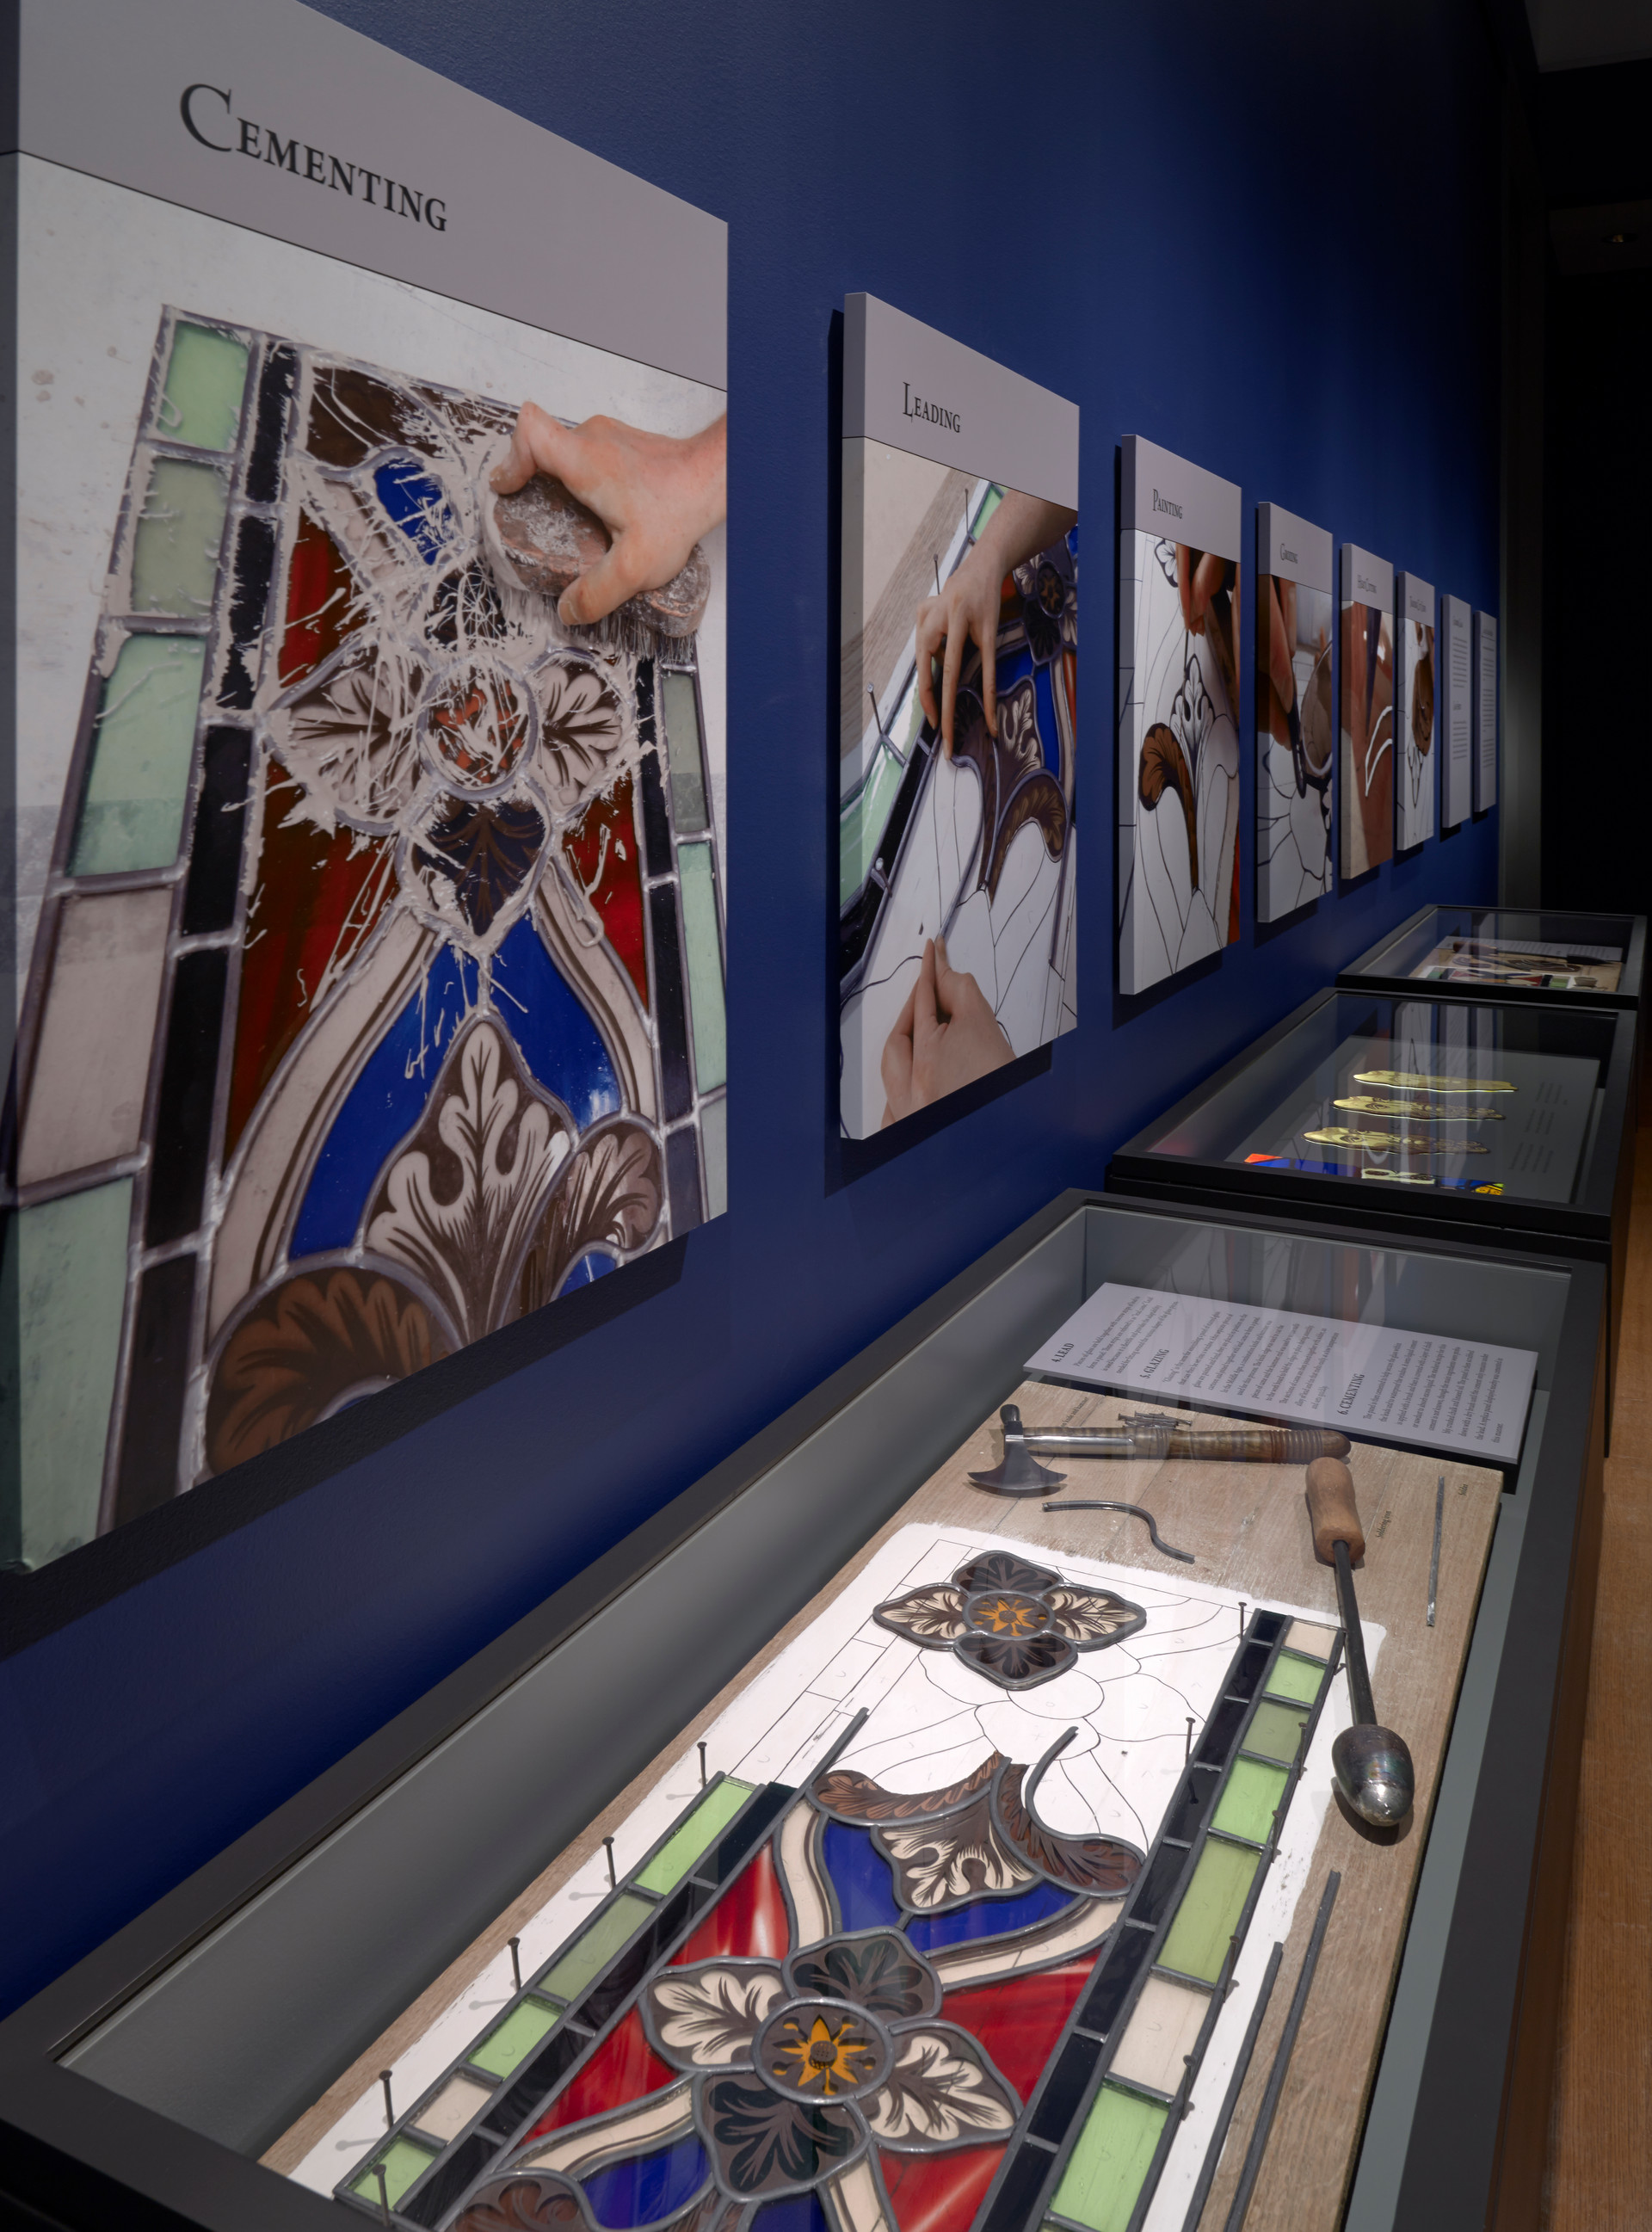 The latter half of the exhibition was devoted to  illustrating how medieval stained glass was made.